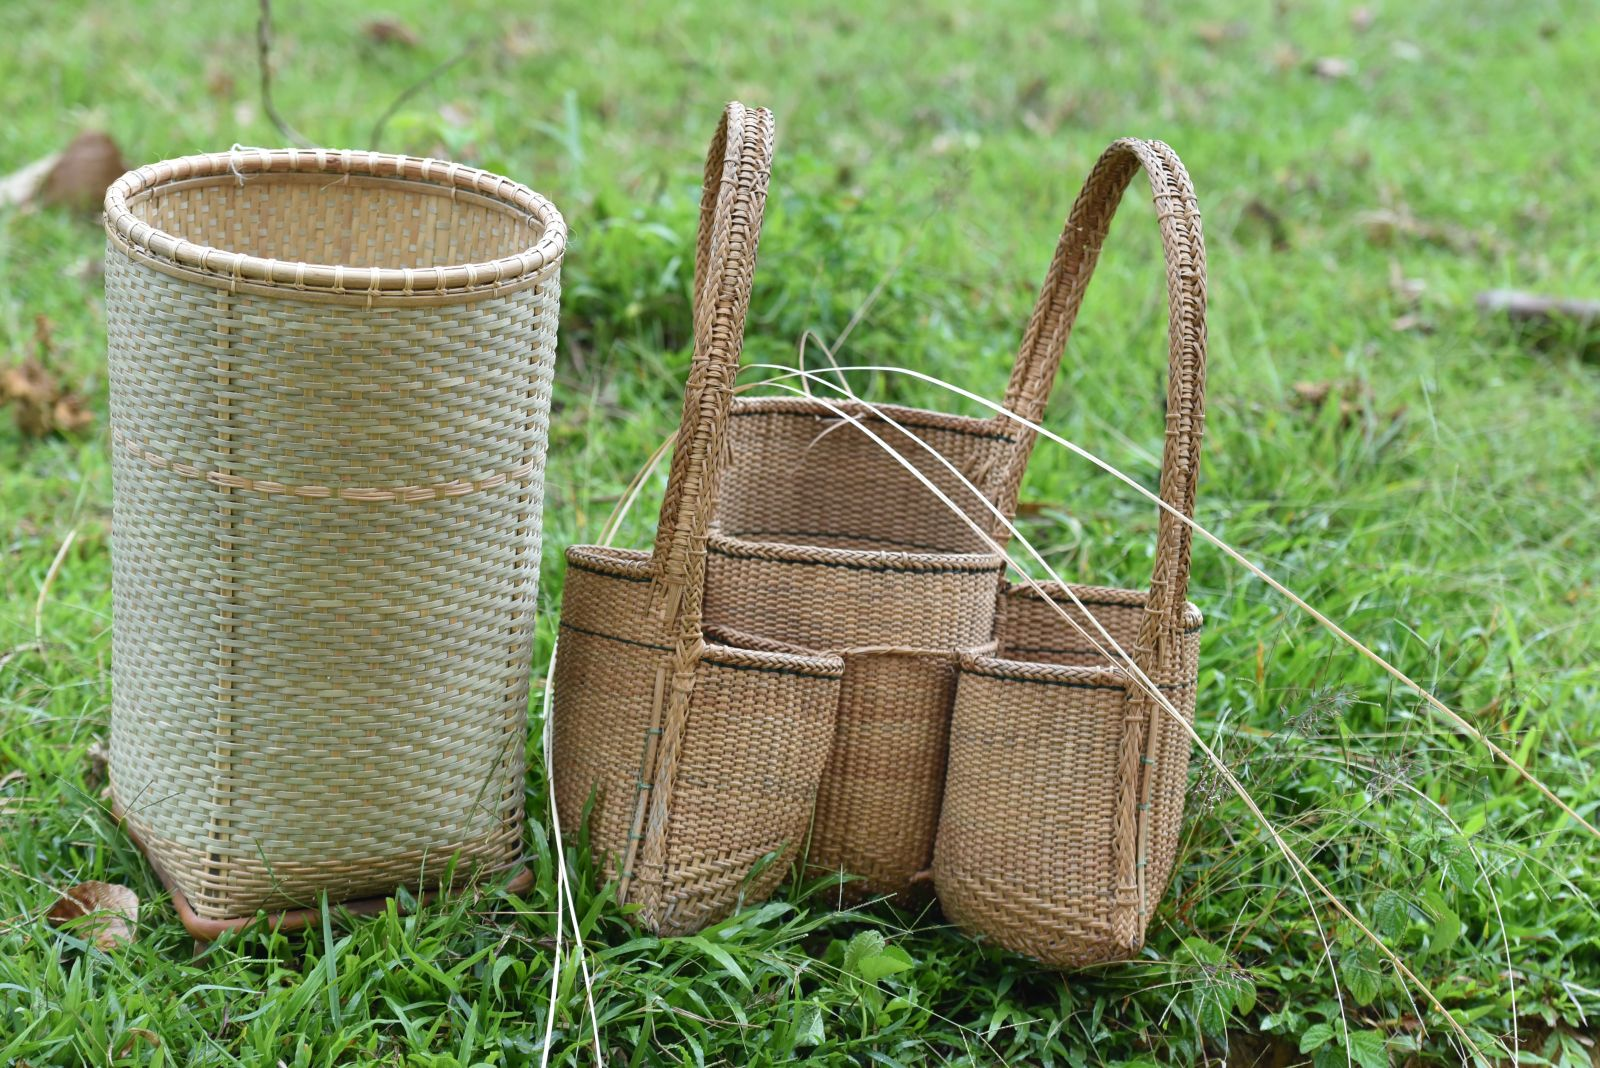 The large and small baskets of many designs have created the distinctions of the highland people